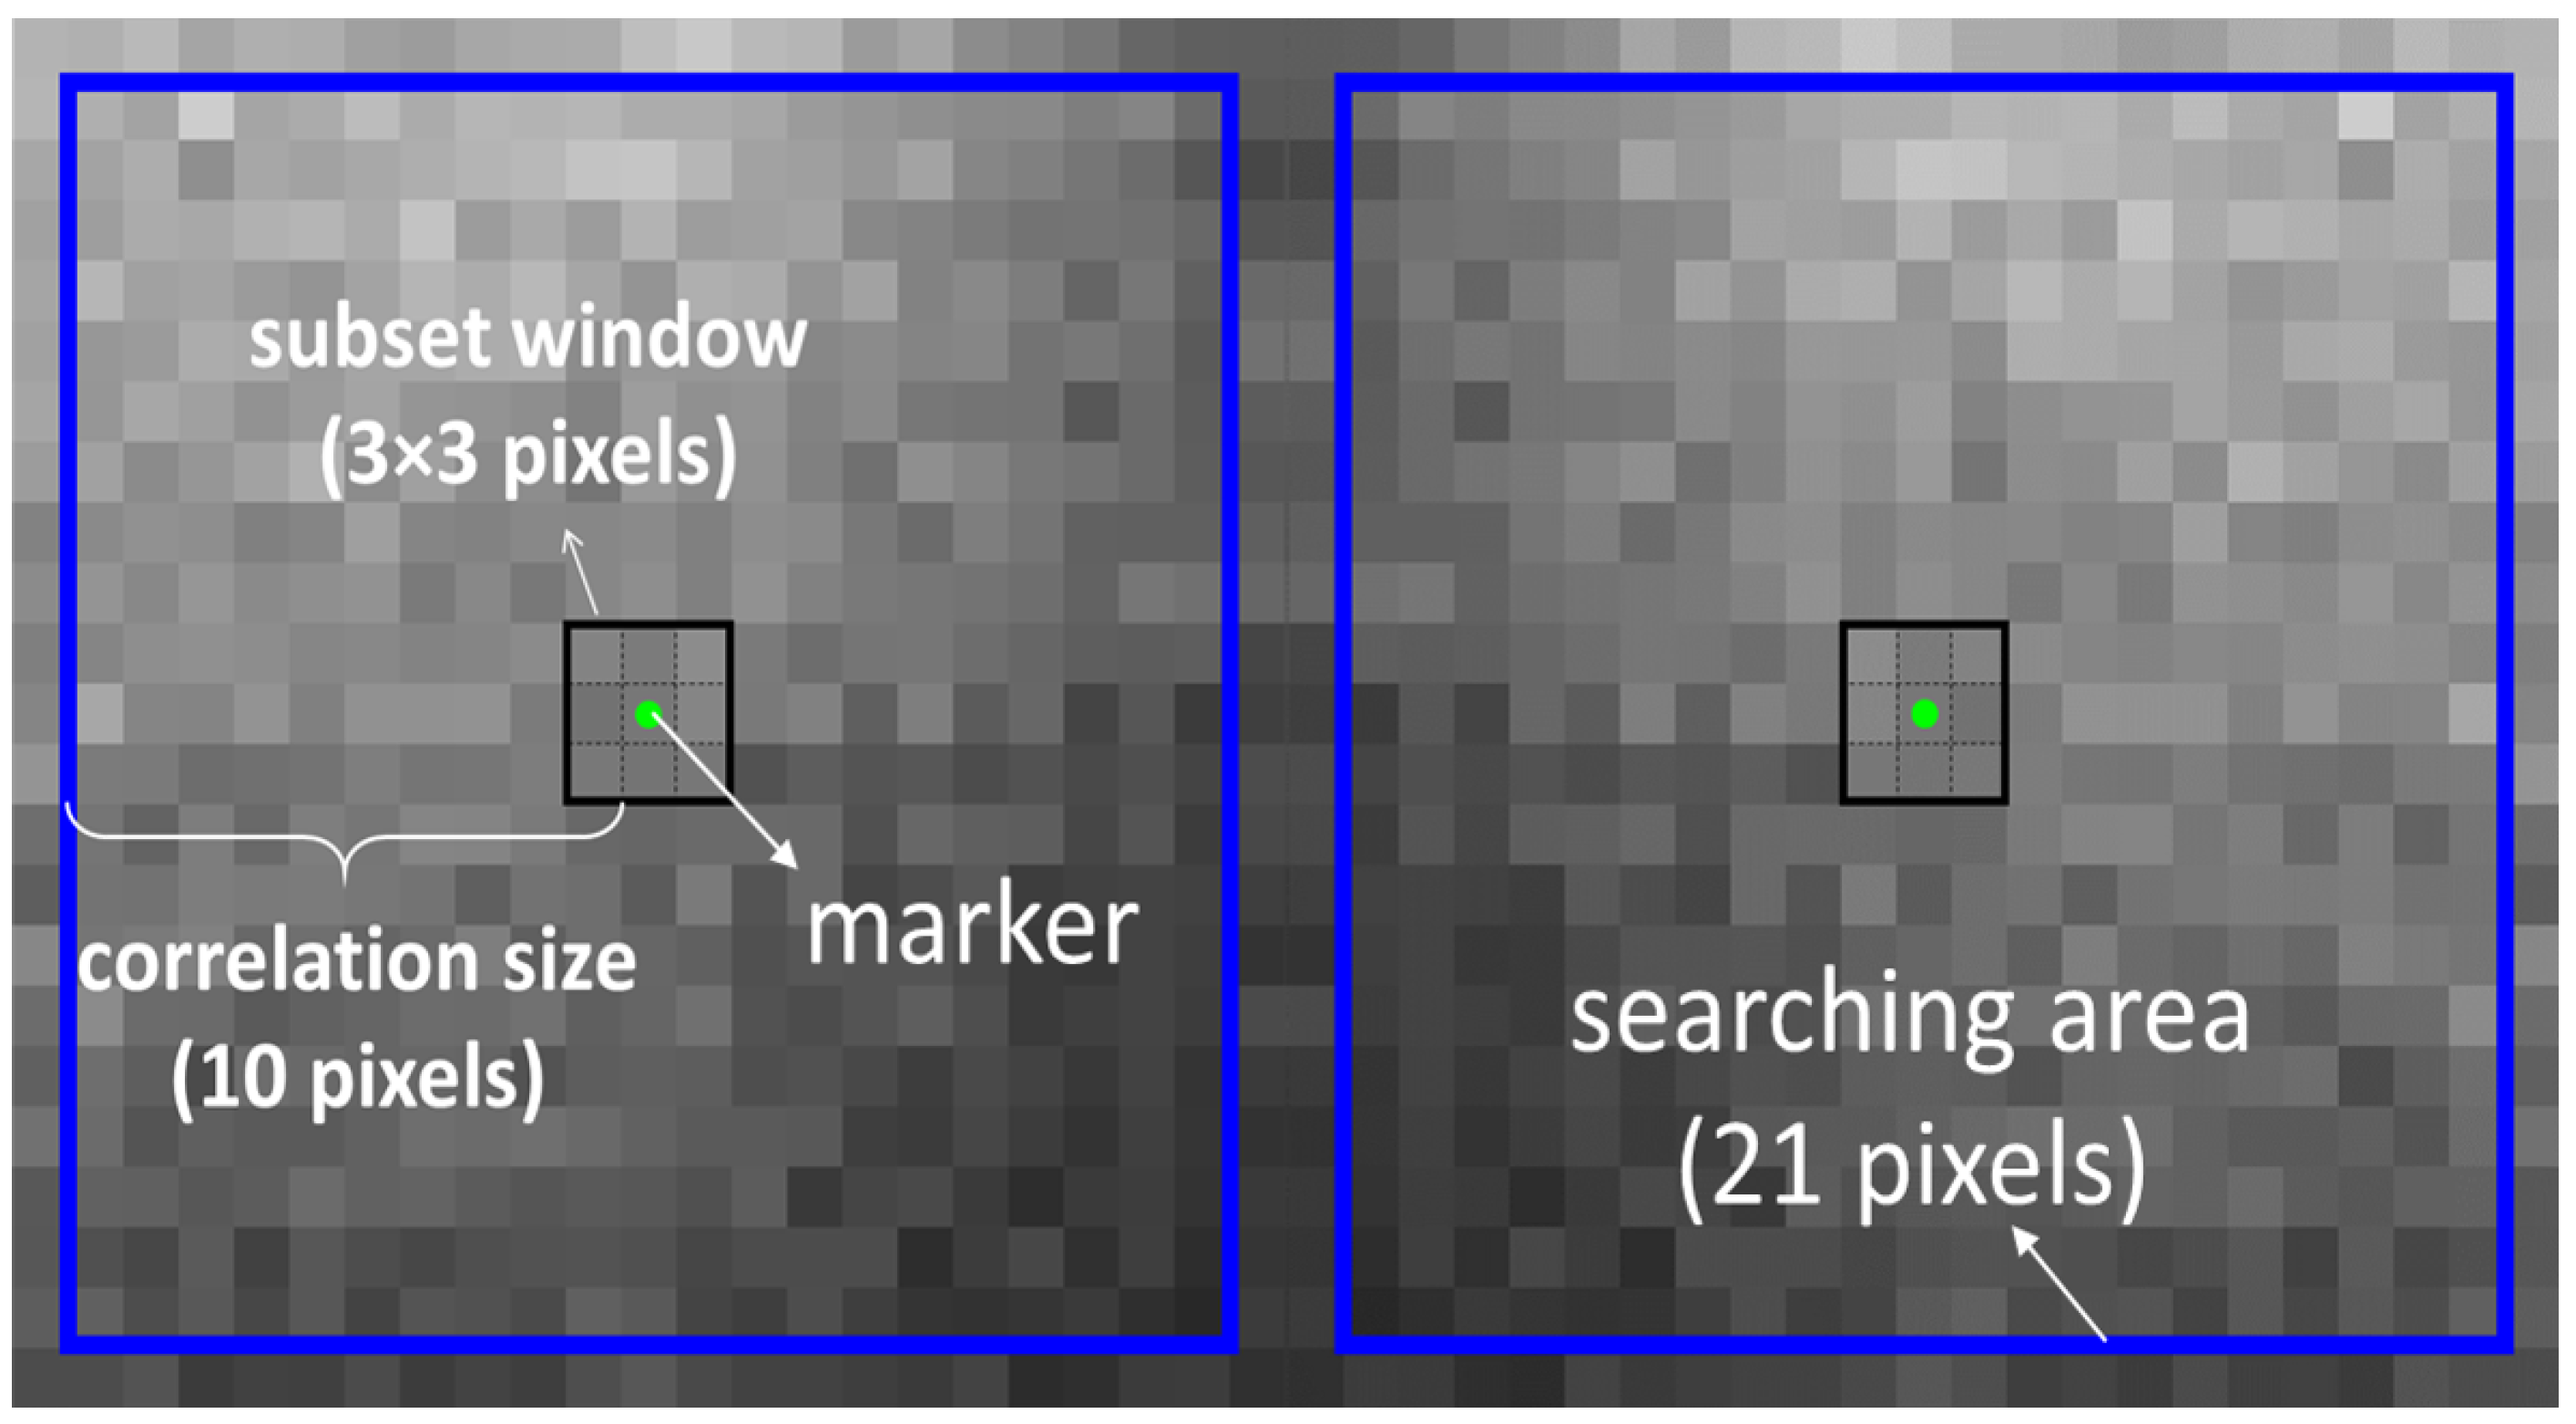 Materials | Free Full-Text | Digital Image Correlation of 2D X-ray